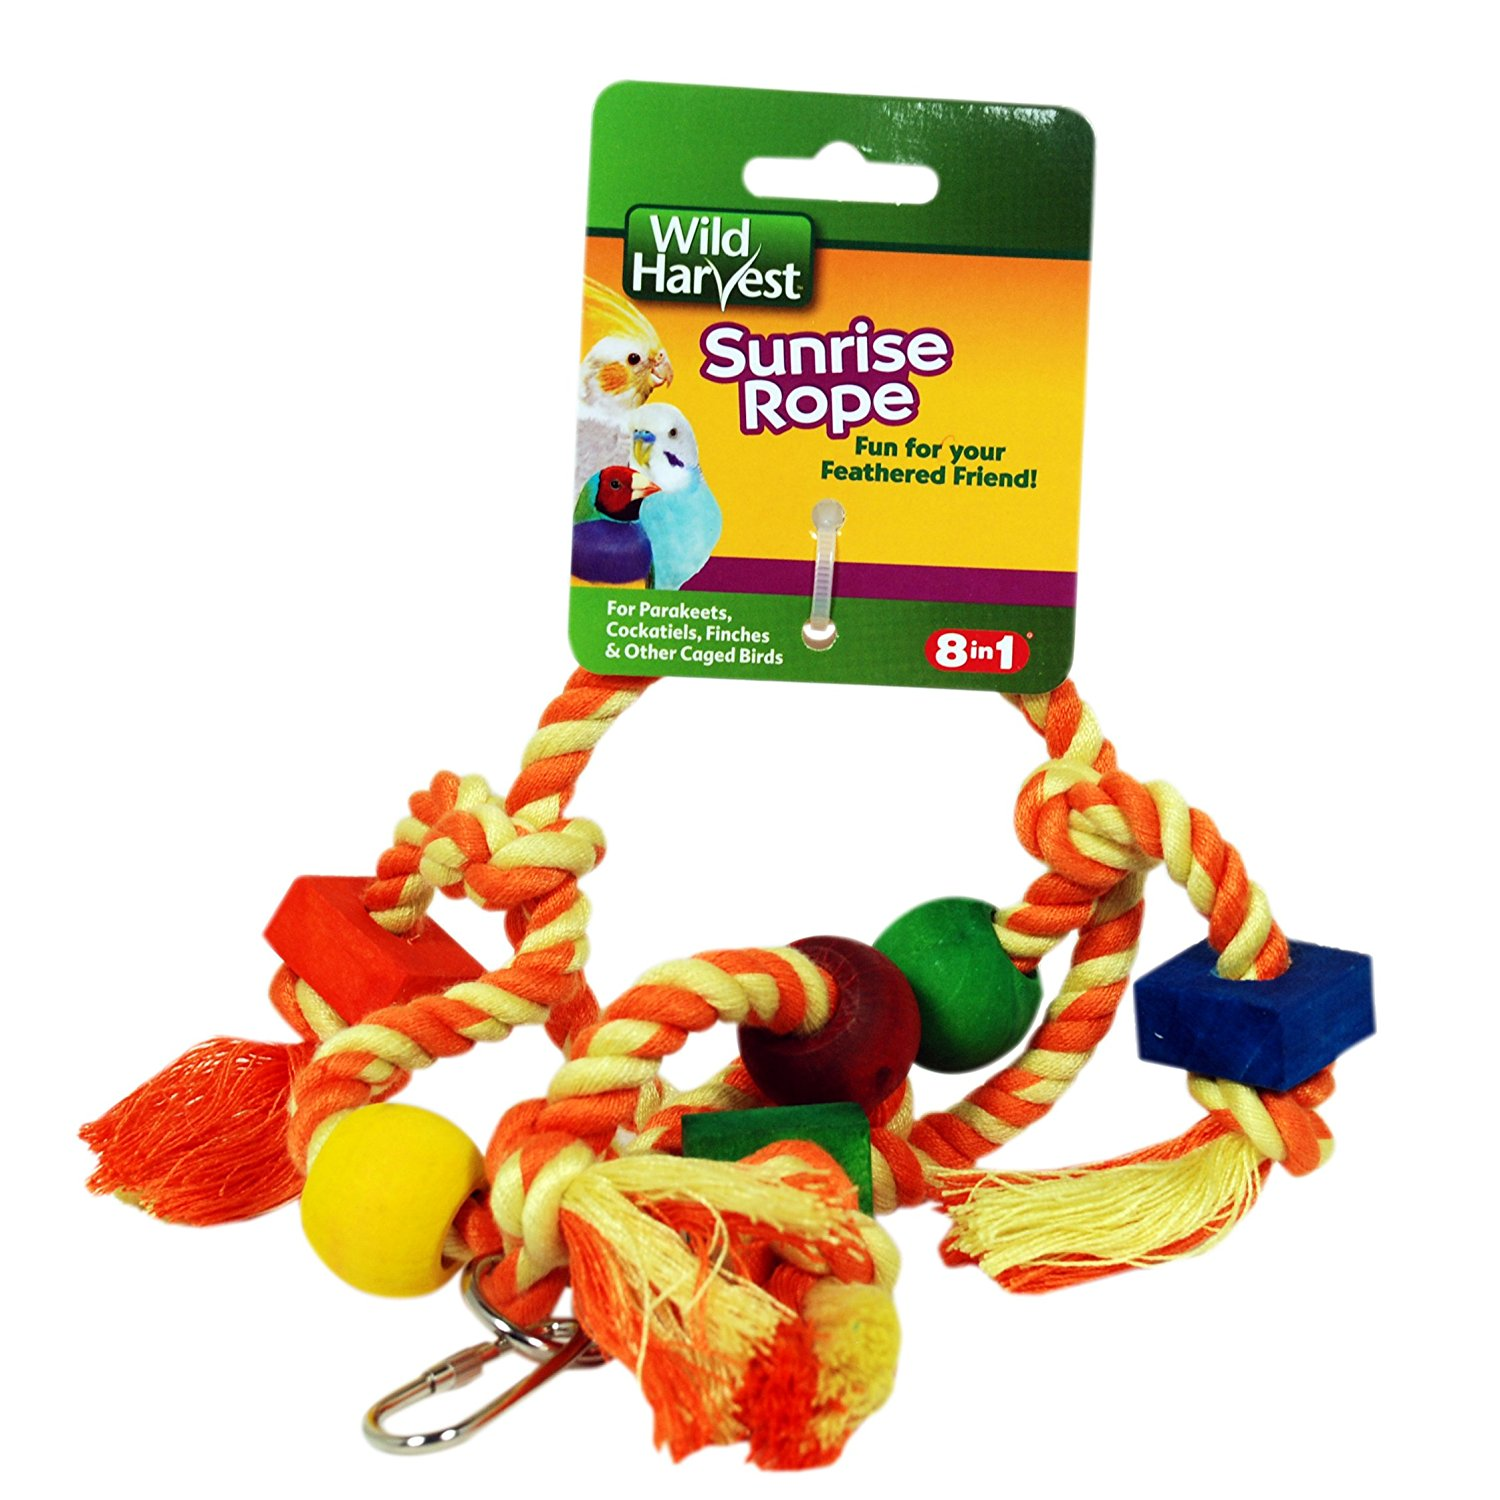 Wild Harvest Sunrise Rope Toy for Parakeets, Cockatiels, & Finches